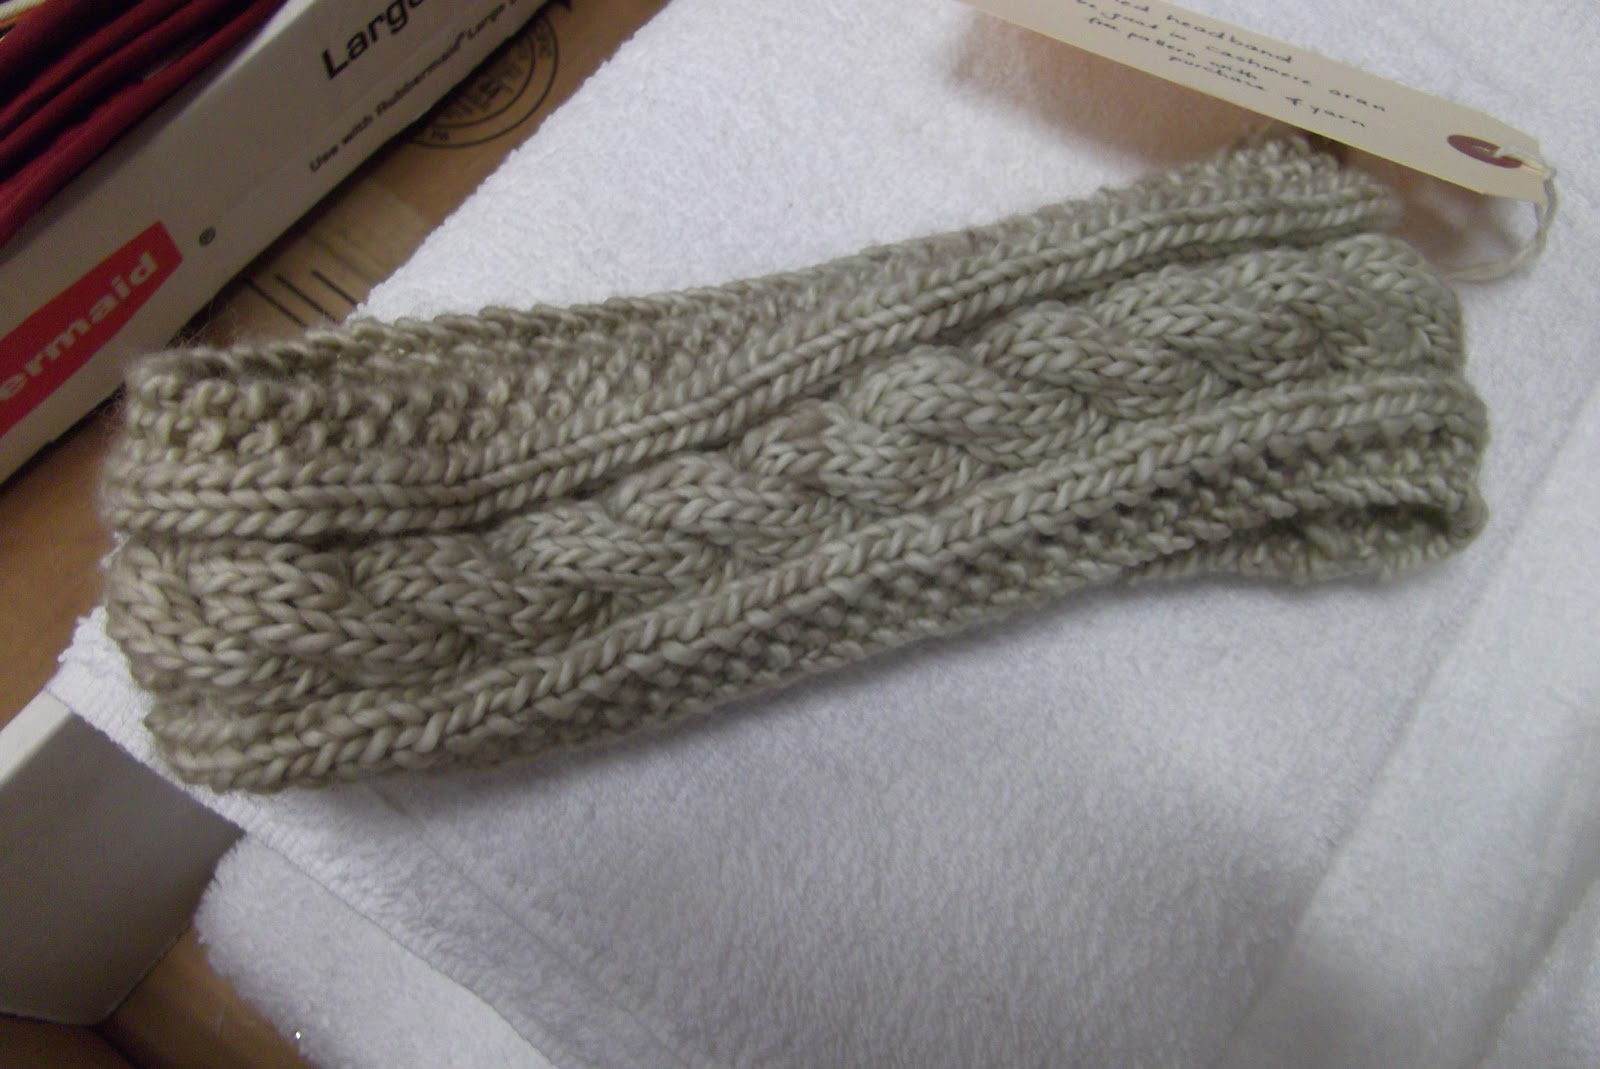 Knitting Headband Pattern Free : Cable Knit Headband Patterns A Knitting Blog